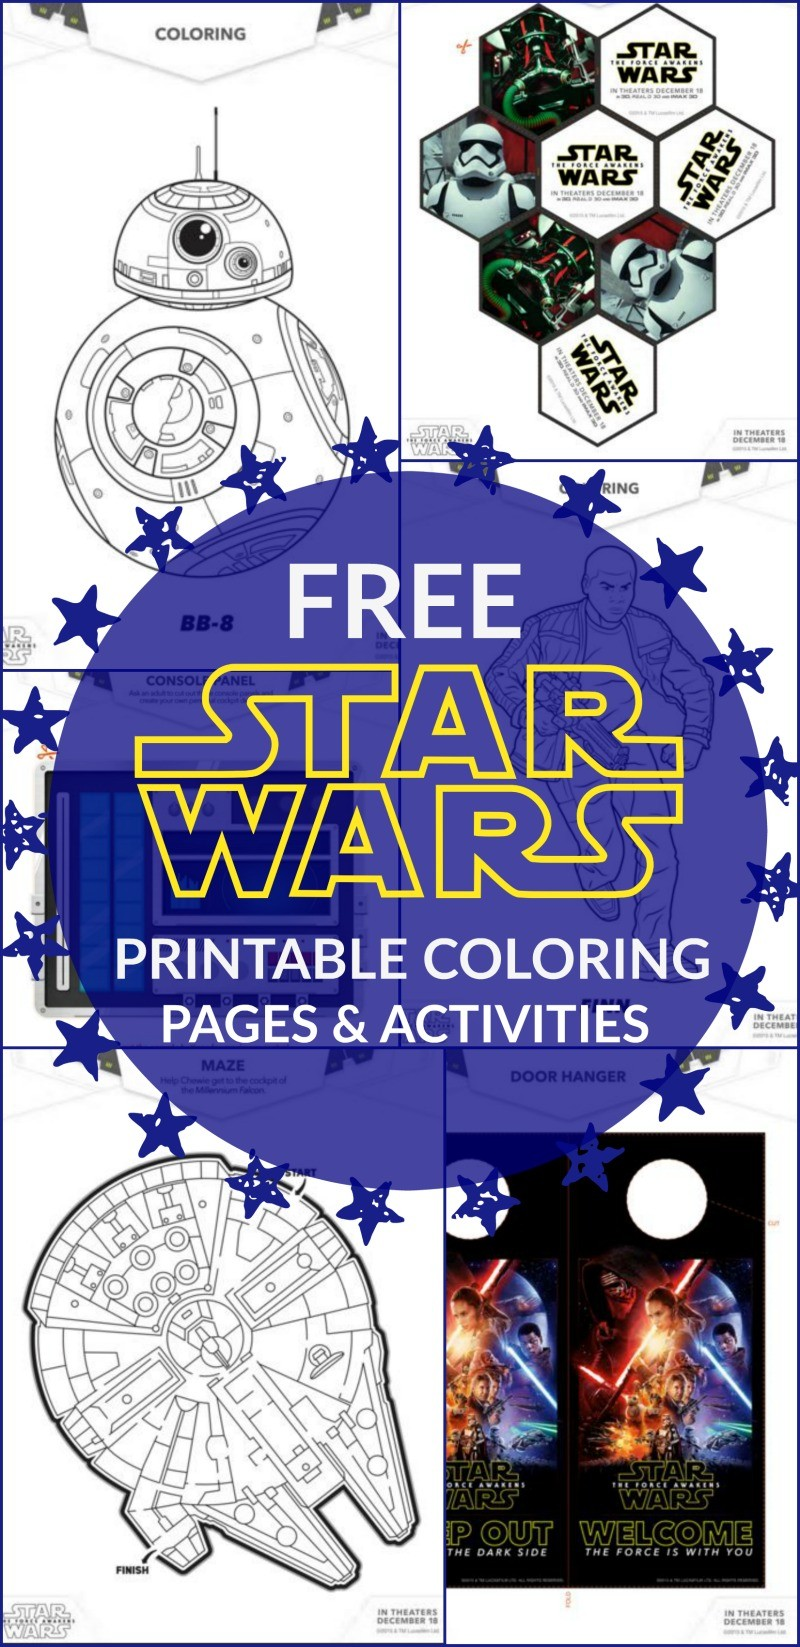 21 FREE STAR WARS THE FORCE AWAKENS ACTIVITIES AND COLORING PAGES TO PRINT